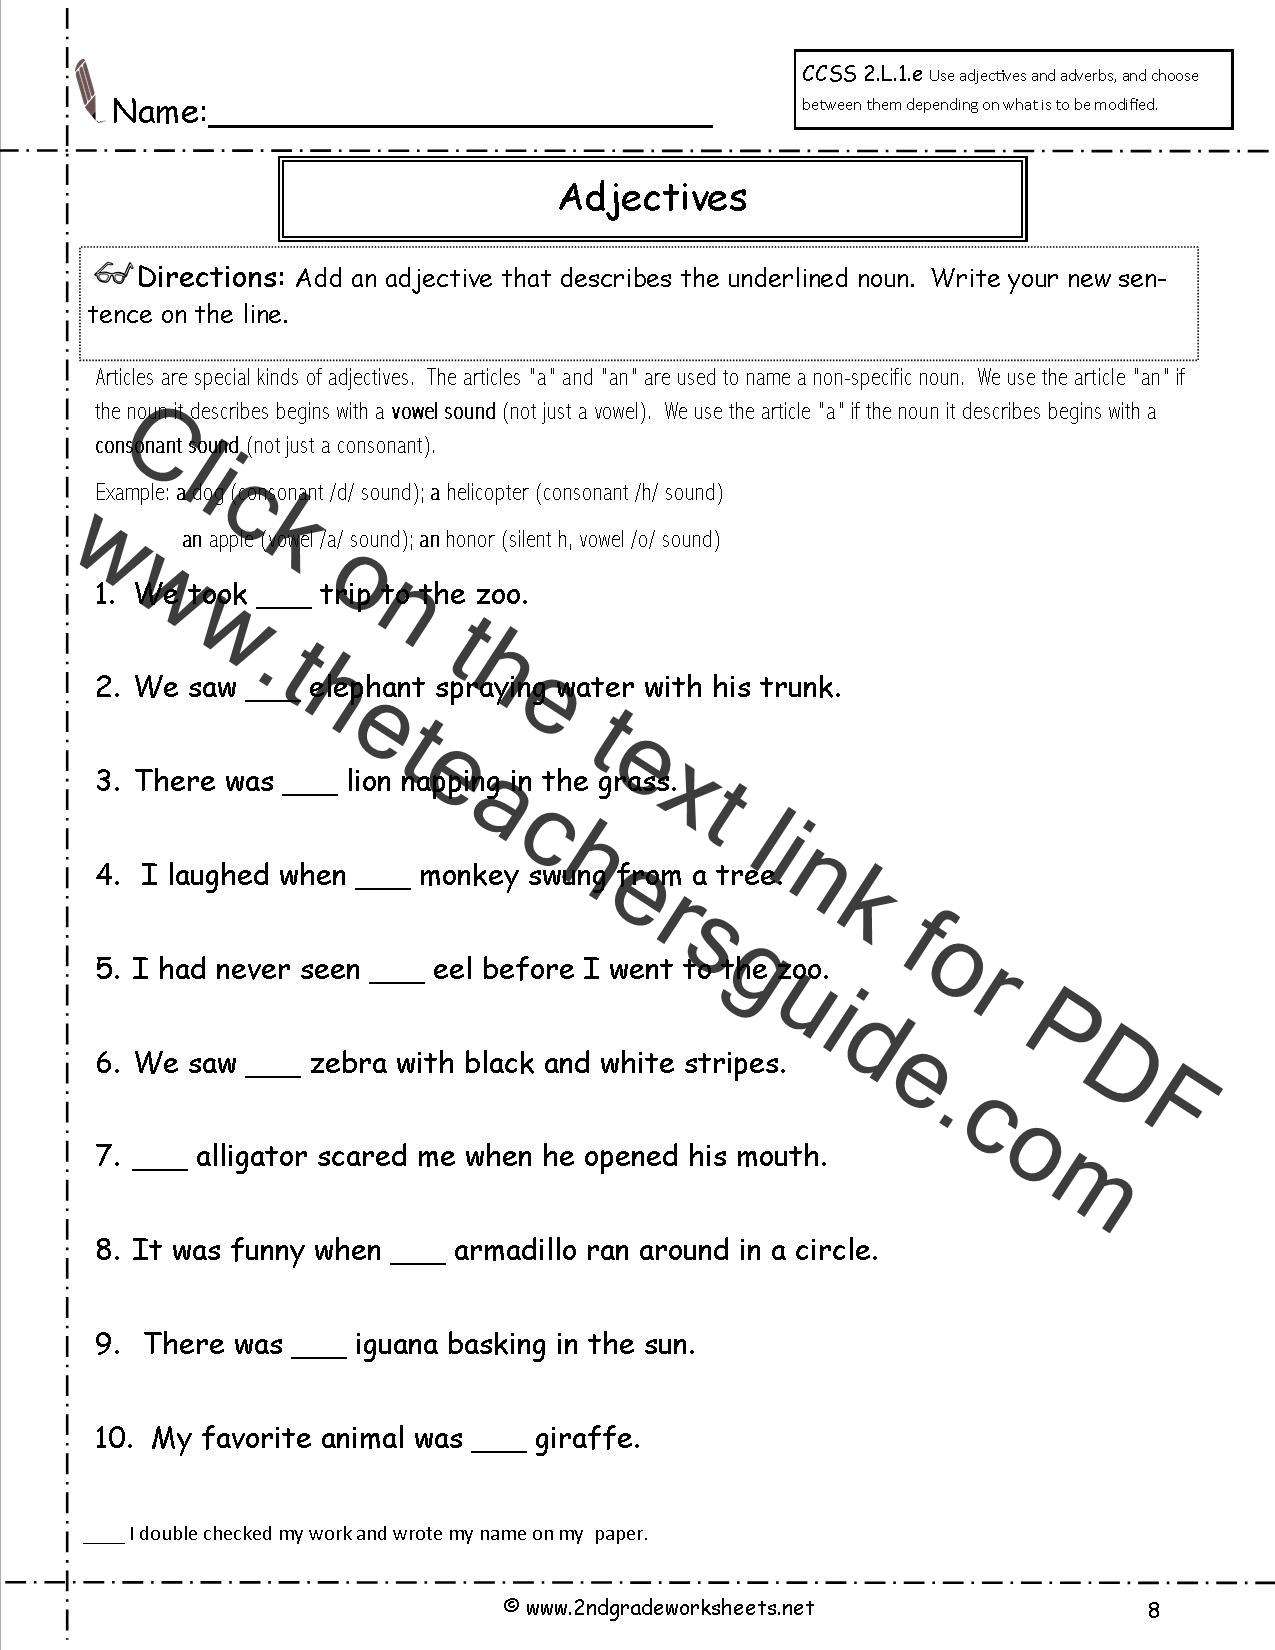 Printables Free 3rd Grade Grammar Worksheets free languagegrammar worksheets and printouts adjectives worksheets